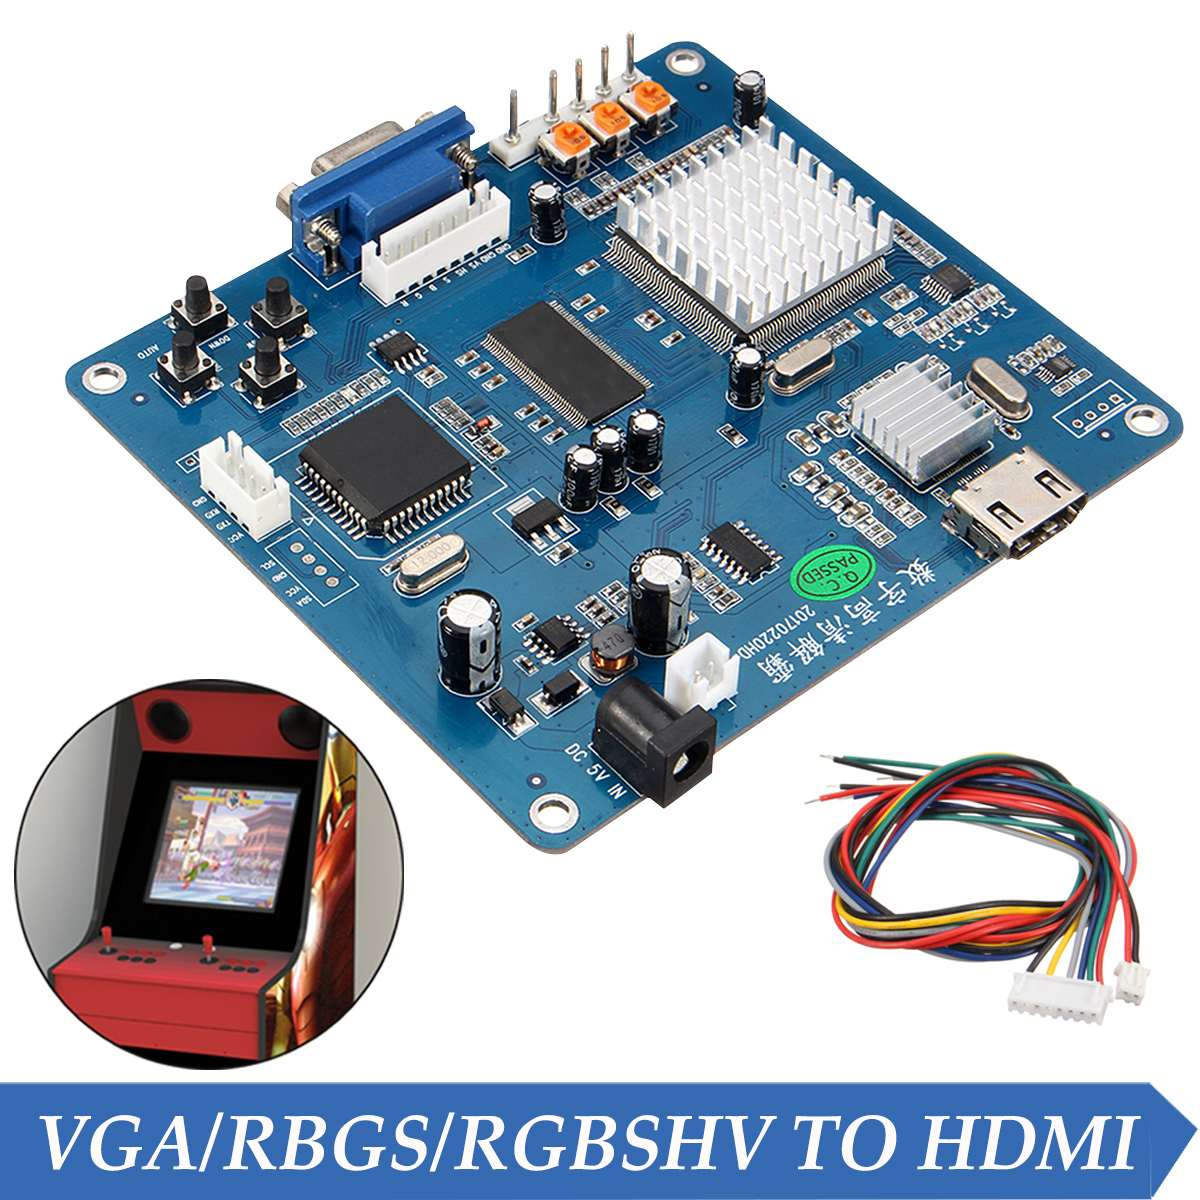 Arcade Game Video Output Converter Board VGA/RGB/CGA/EGA/YUV TO HDMI HD/Jamma Arcade Game Machine Video Output Converter Board twister family board game that ties you up in knots